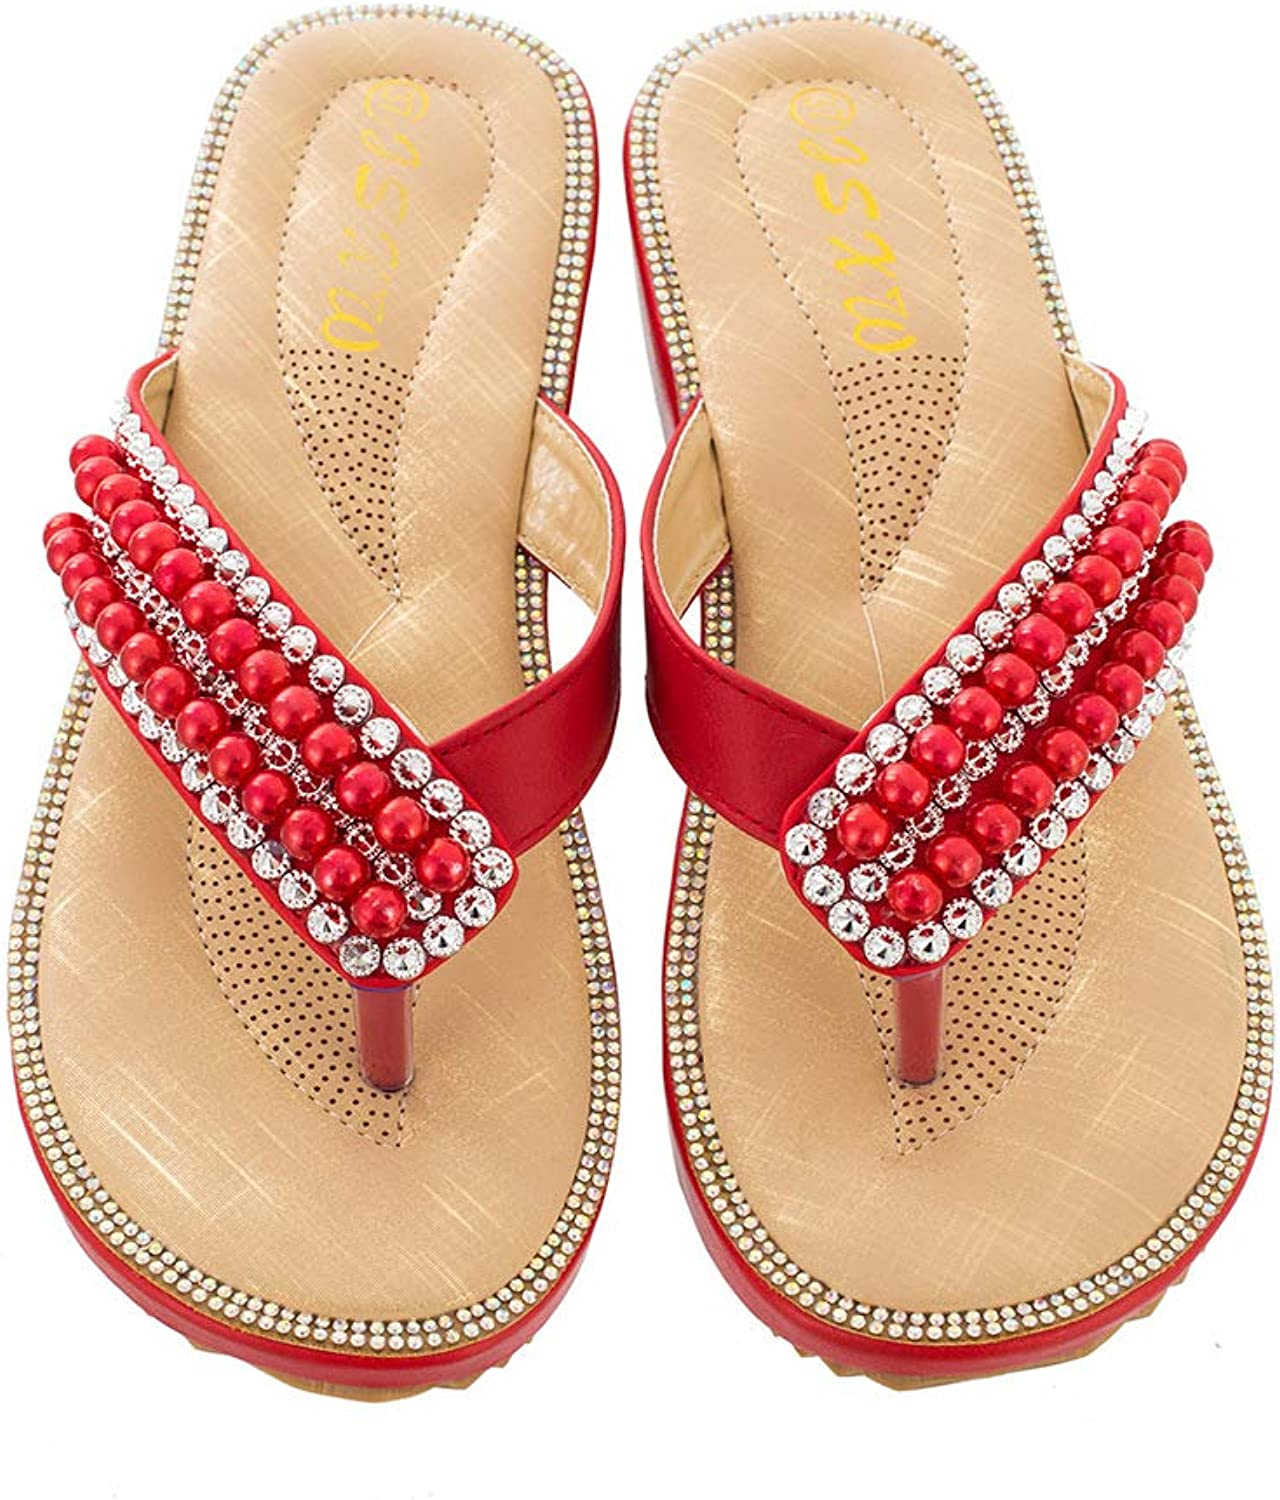 WL Women's Slippers Thong Sandals Summer Bohemia Flip Flops Comfy Beach Pool shoes with Rhinestone Bead,Girls Wedge Sandals Toe Post Water shoes,36-42